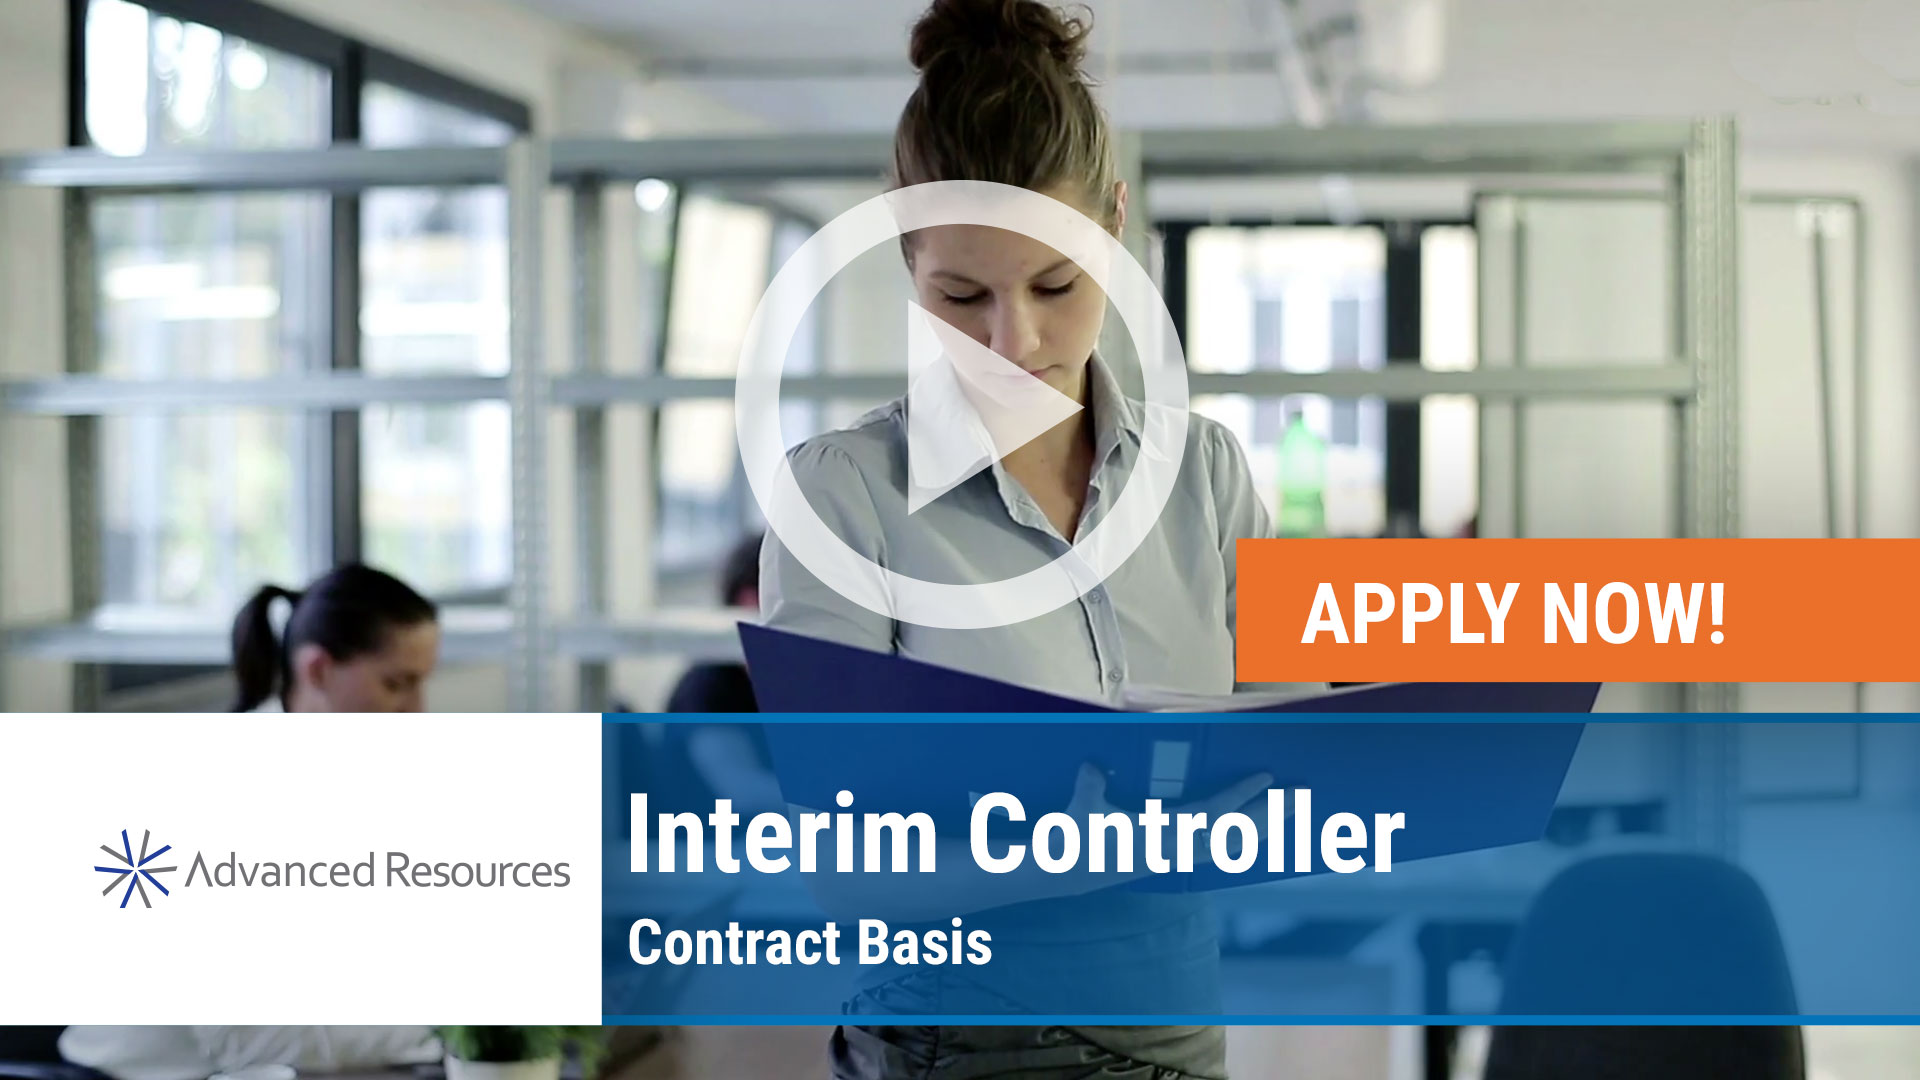 Watch our careers video for available job opening Interim Controller in Chicago, Illinois